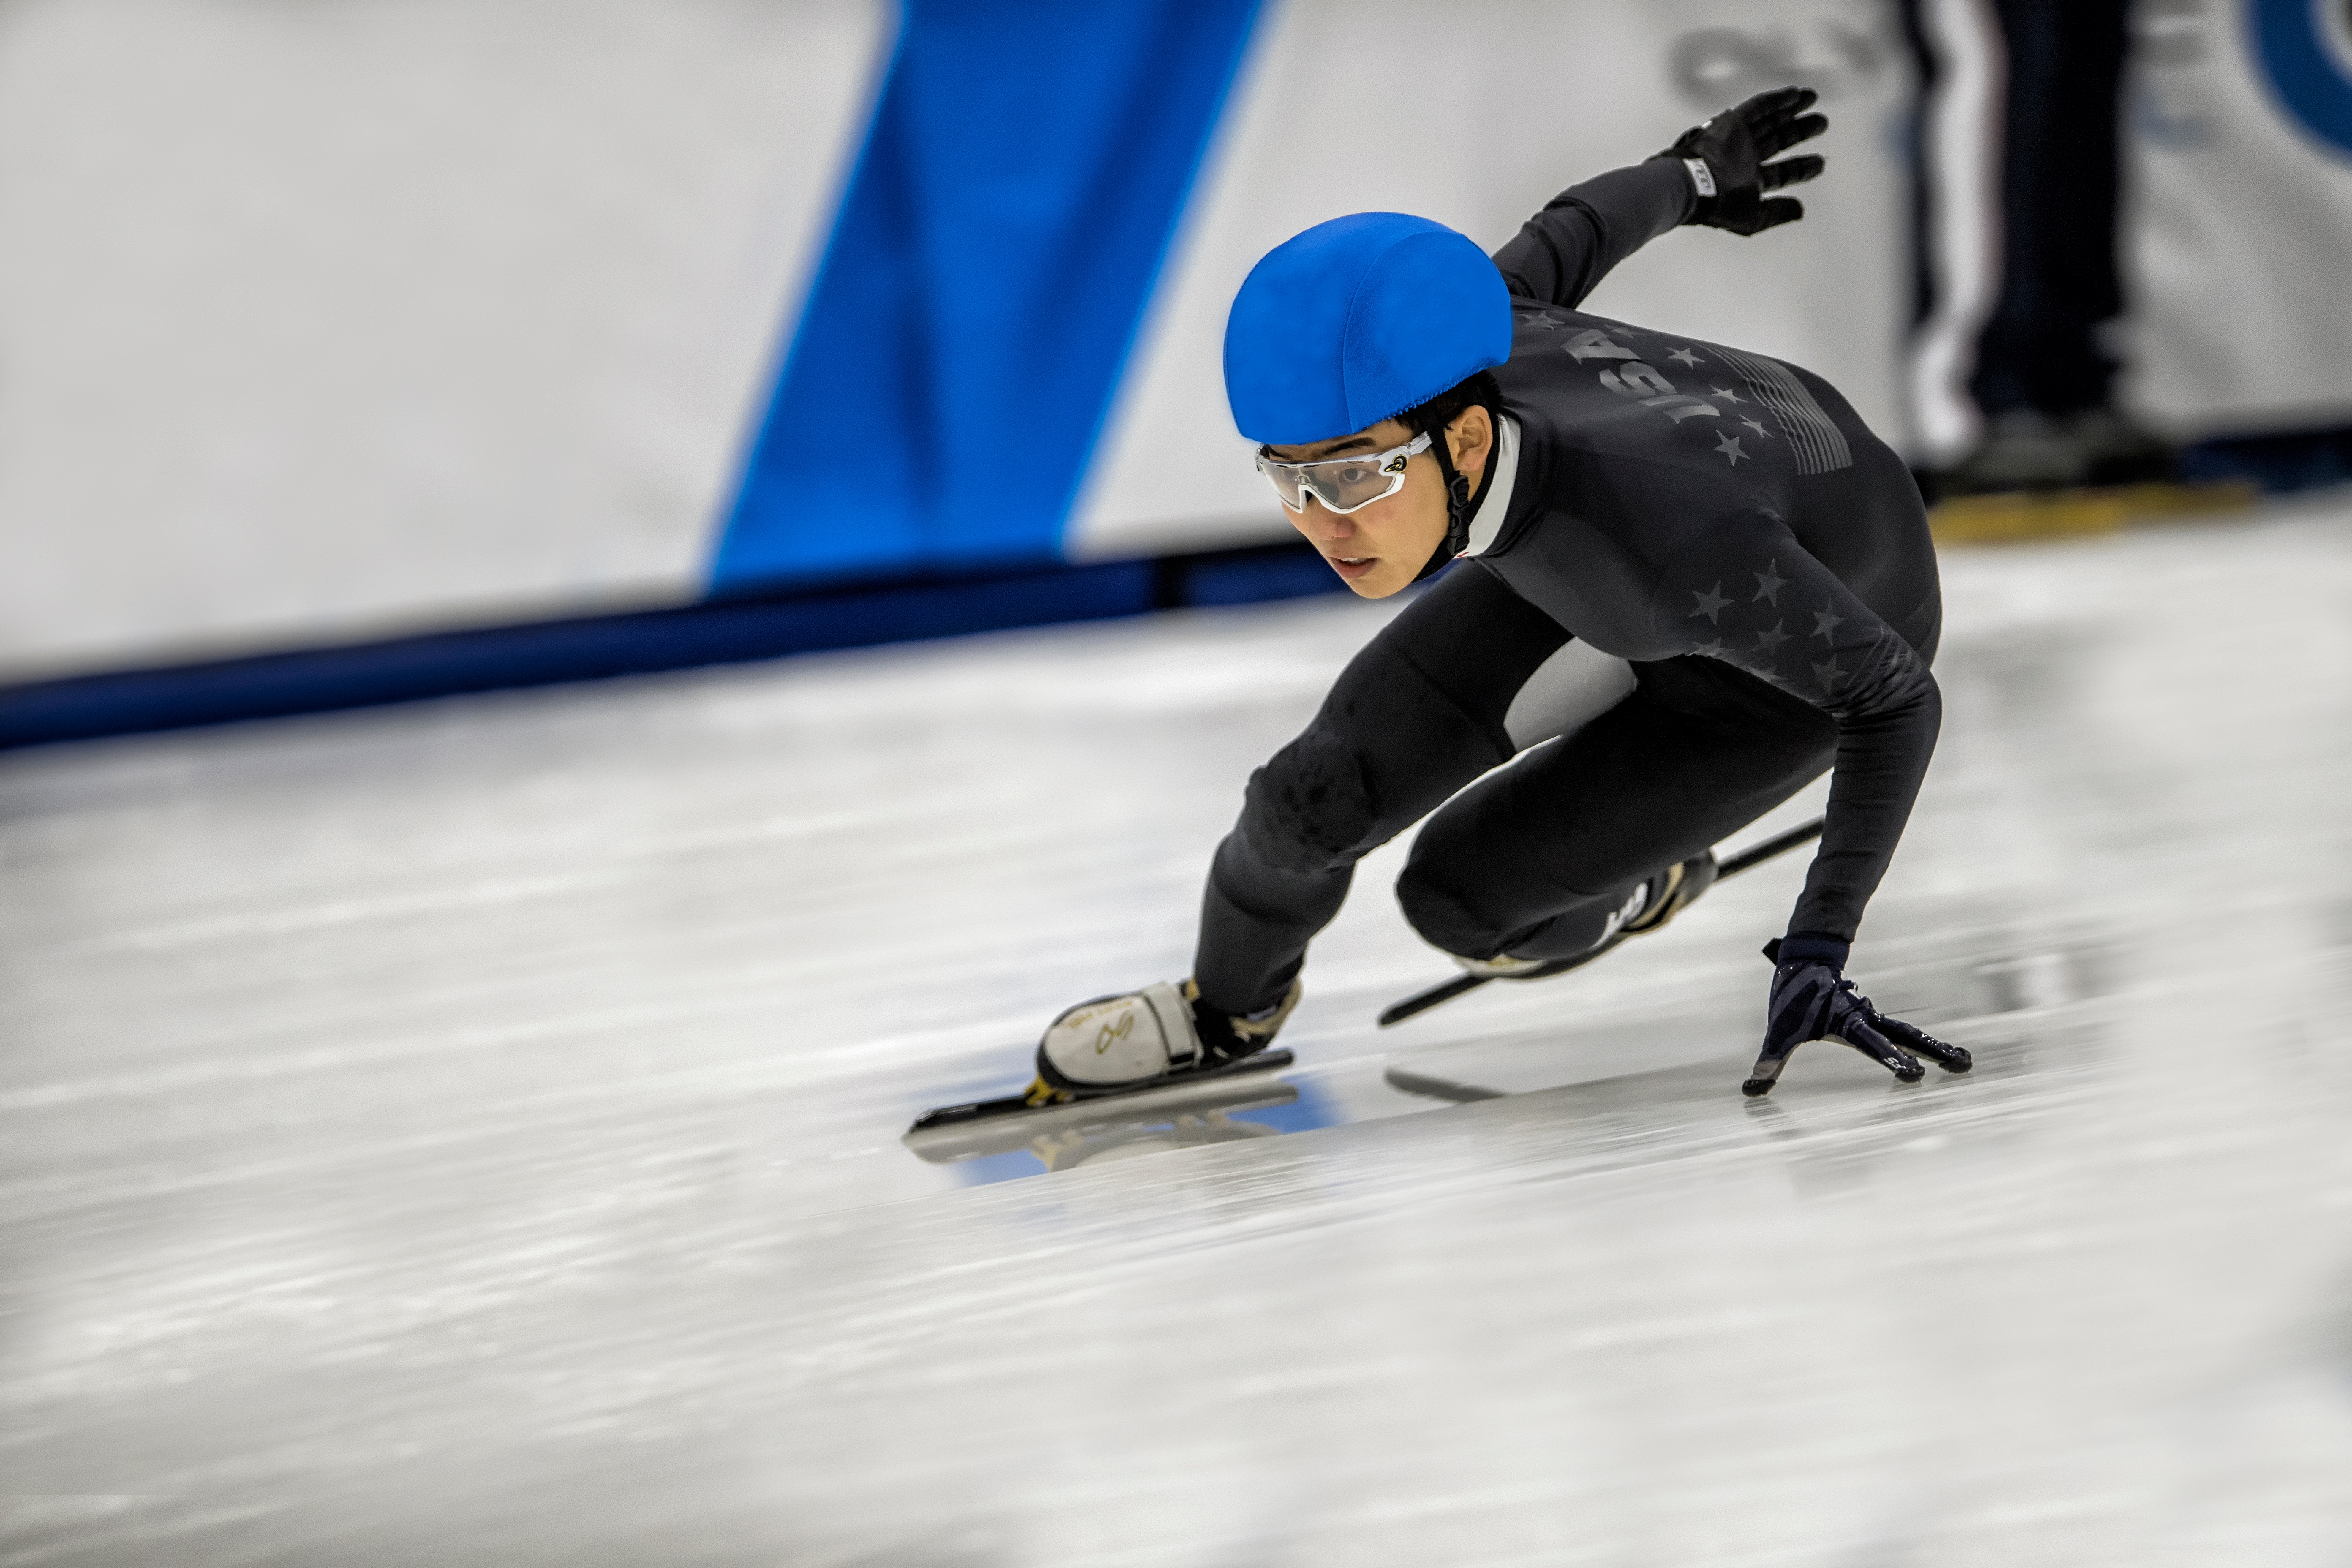 20171216-US-Speedskating-ST-Olympic-Trials-500m-0401-edit